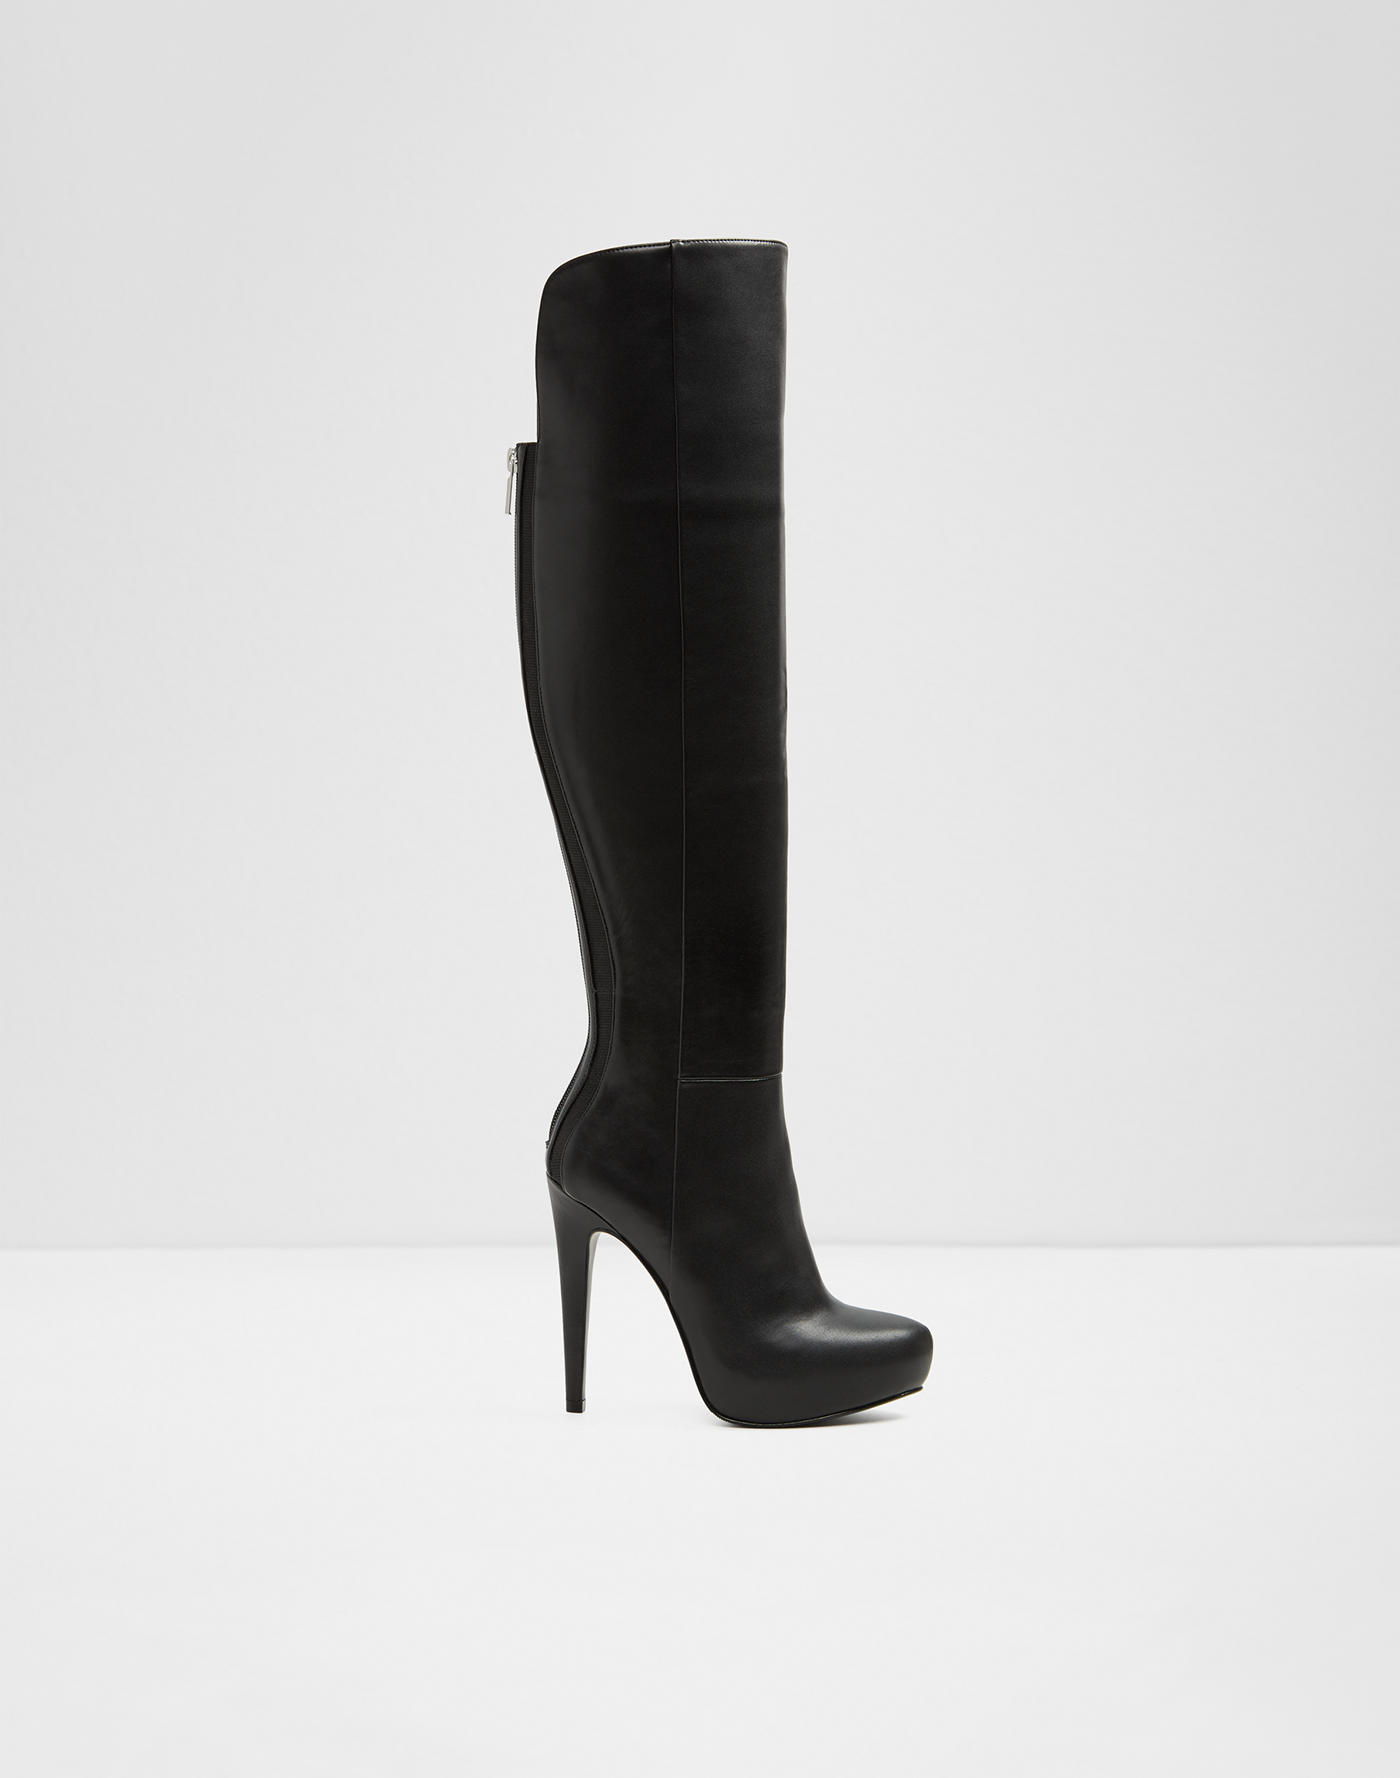 1596e220e70f Boots For Women | Winter Boots & Ankle Boots | ALDO US | Aldoshoes.com US